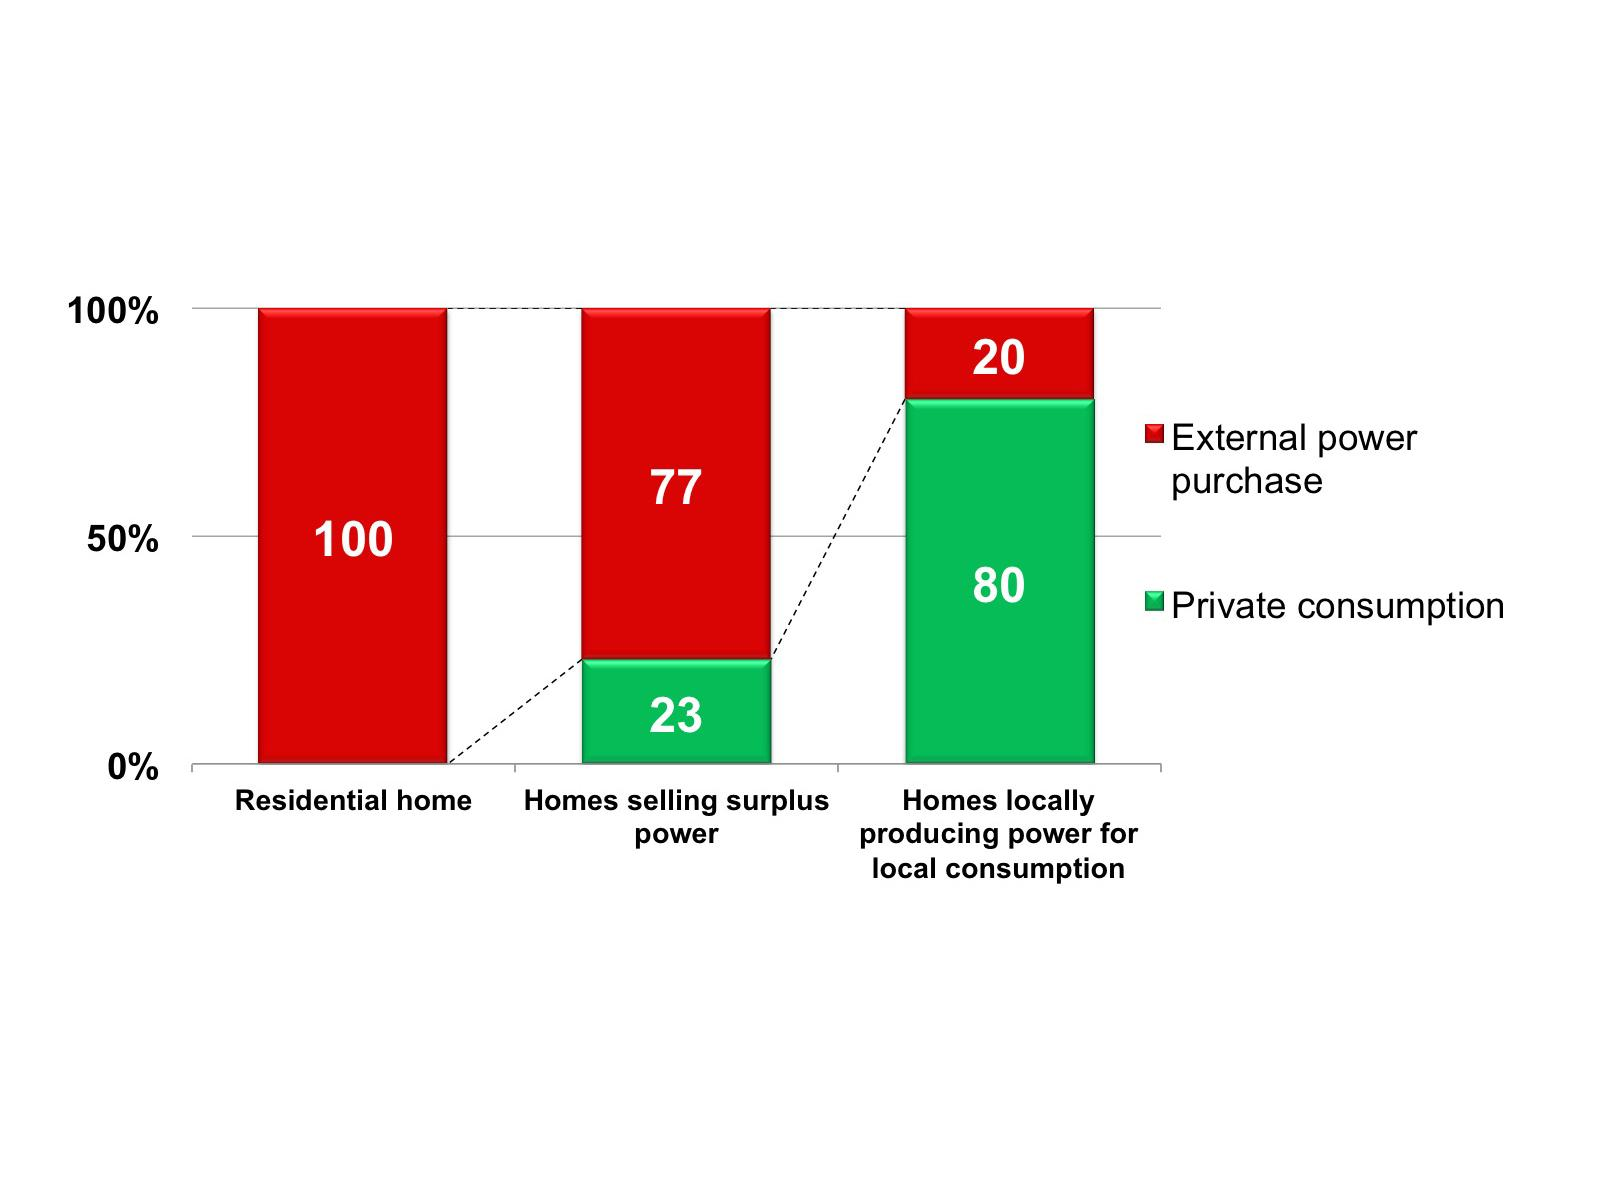 Comparison of power purchased from external sources and private consumption